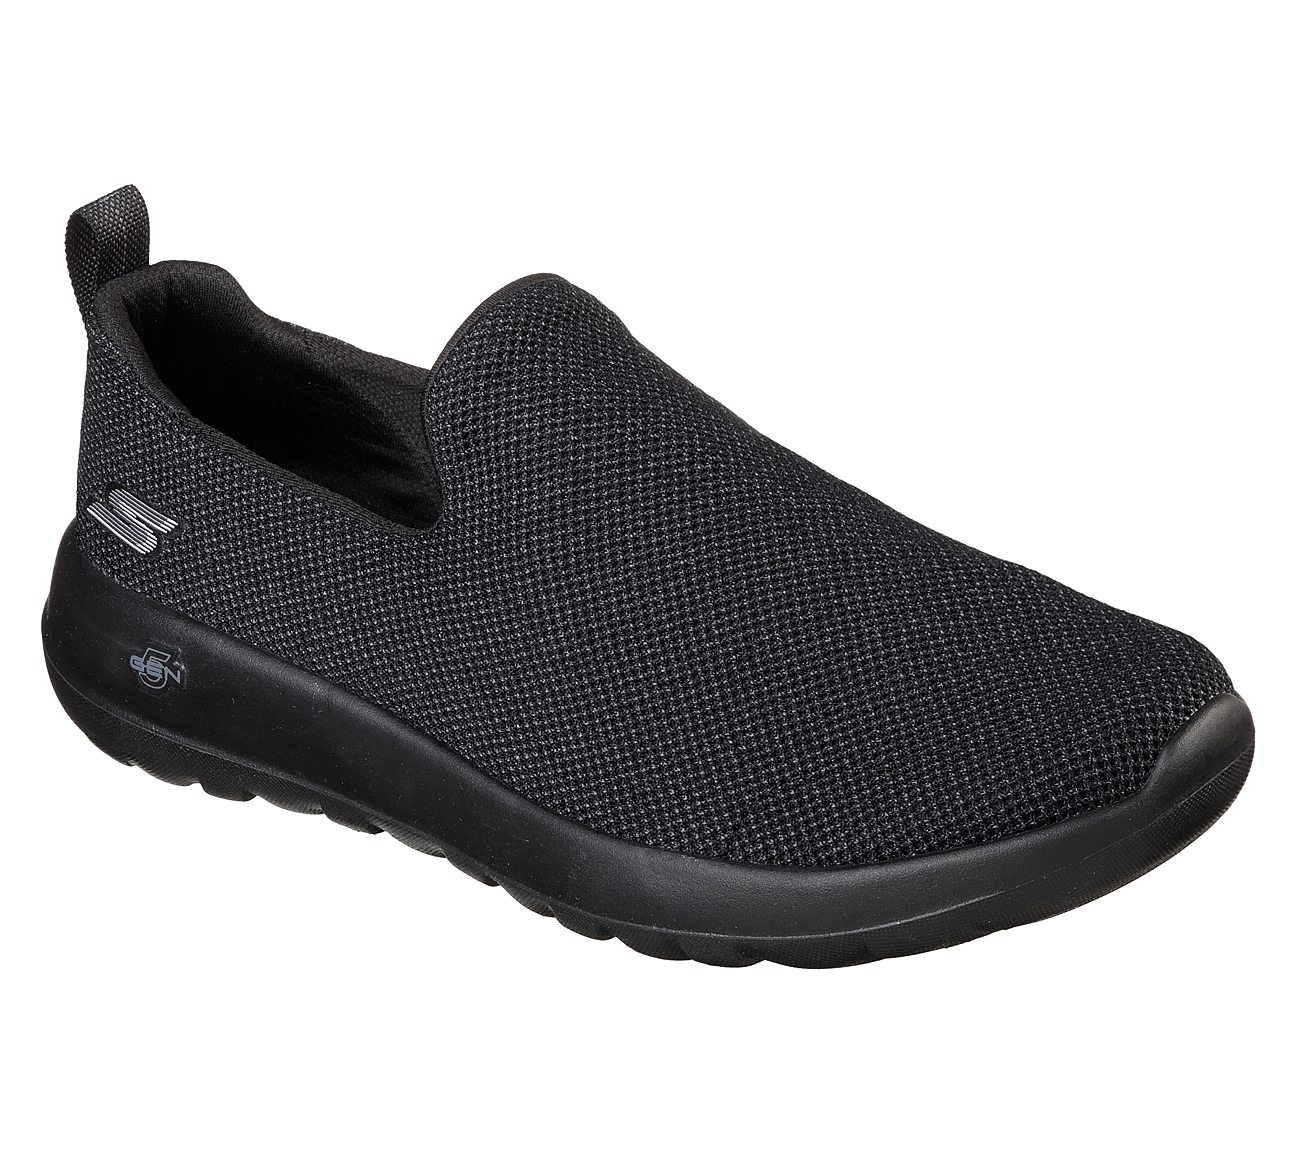 SKECHERS PerformanceGo Walk Max - Centric fRqXVy